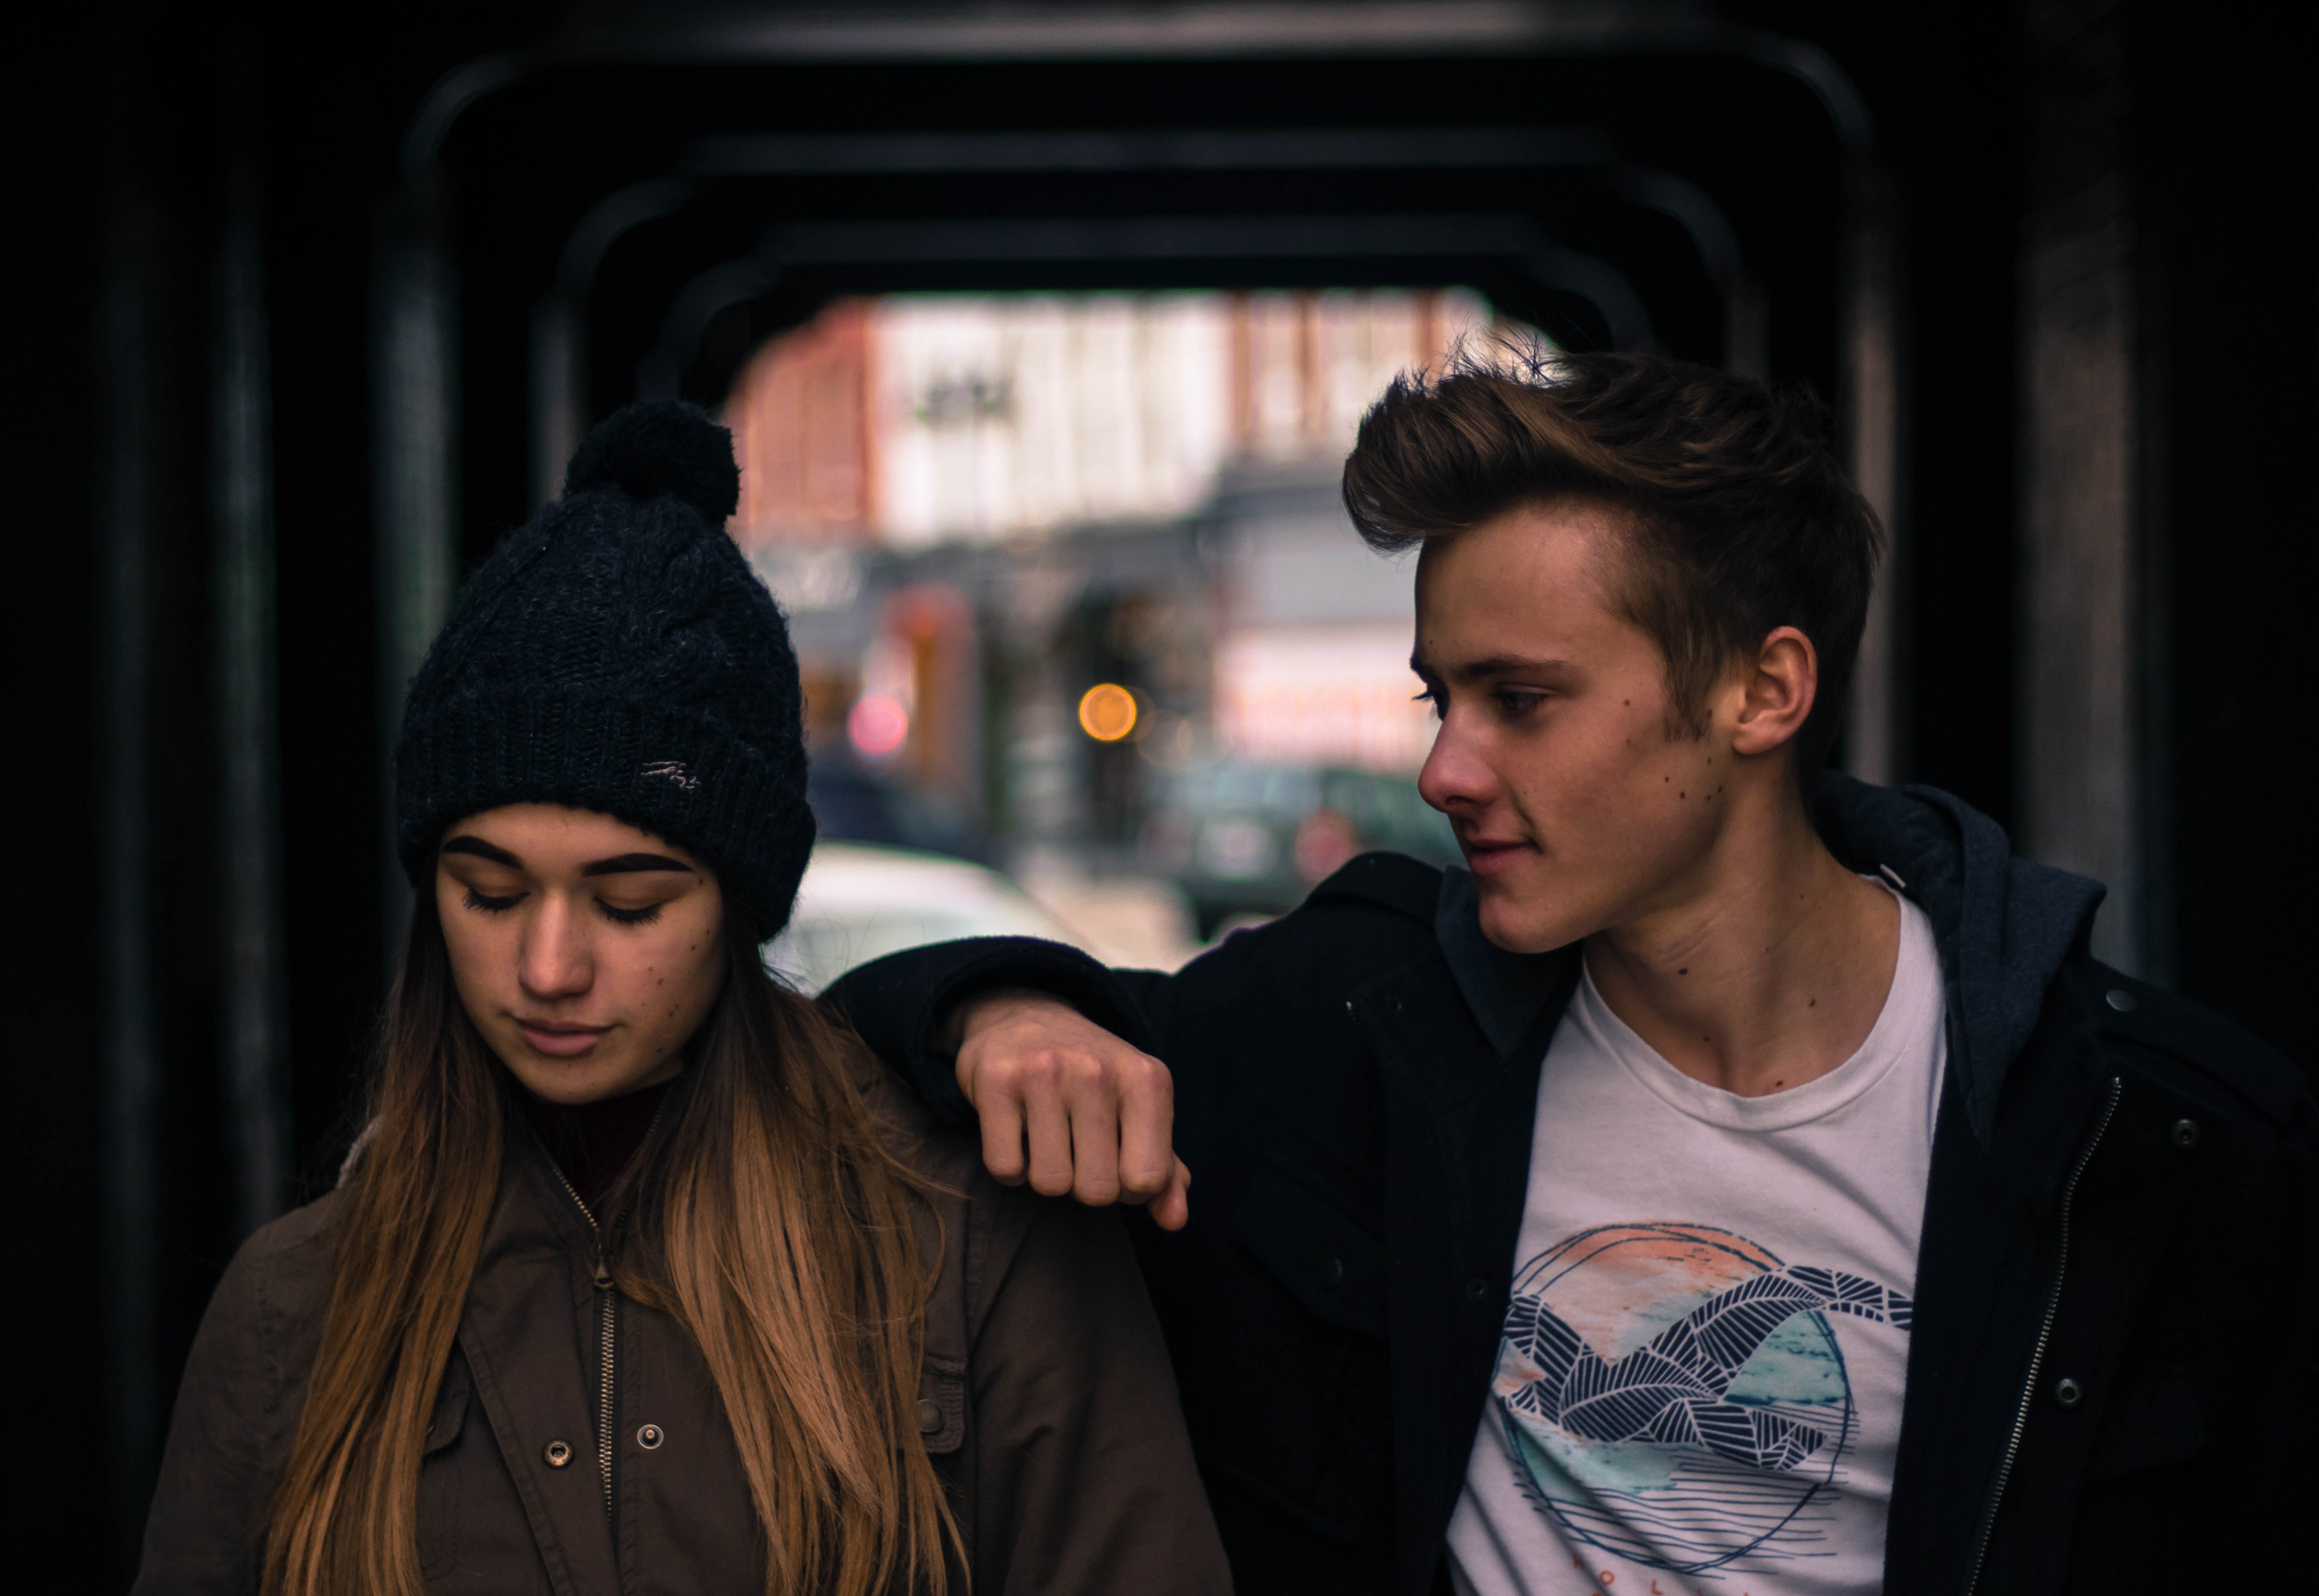 Young Couple in City at Night, Adult, Outside, Wear, Urban, HQ Photo